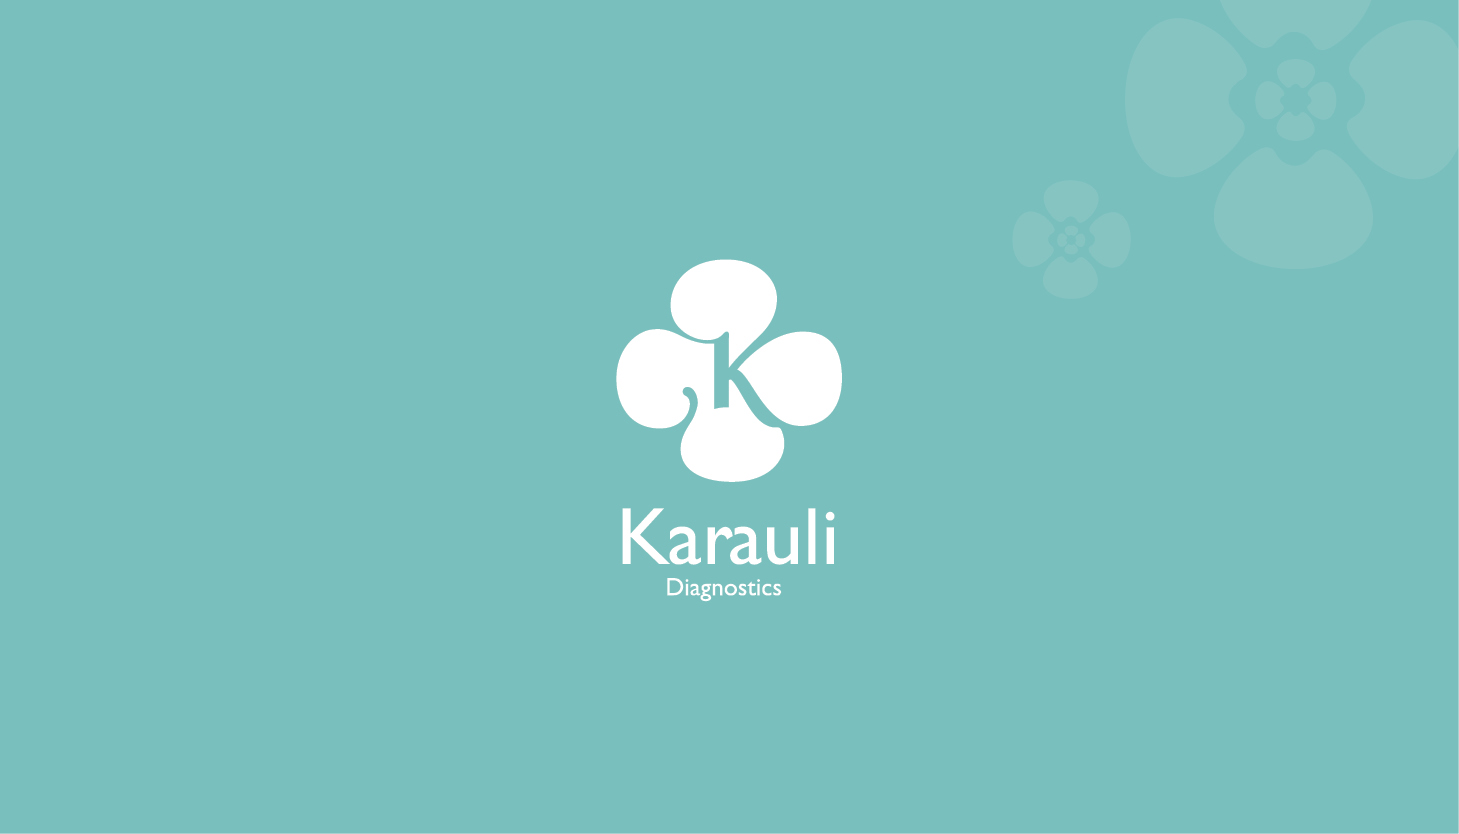 karauli diagnostics logo